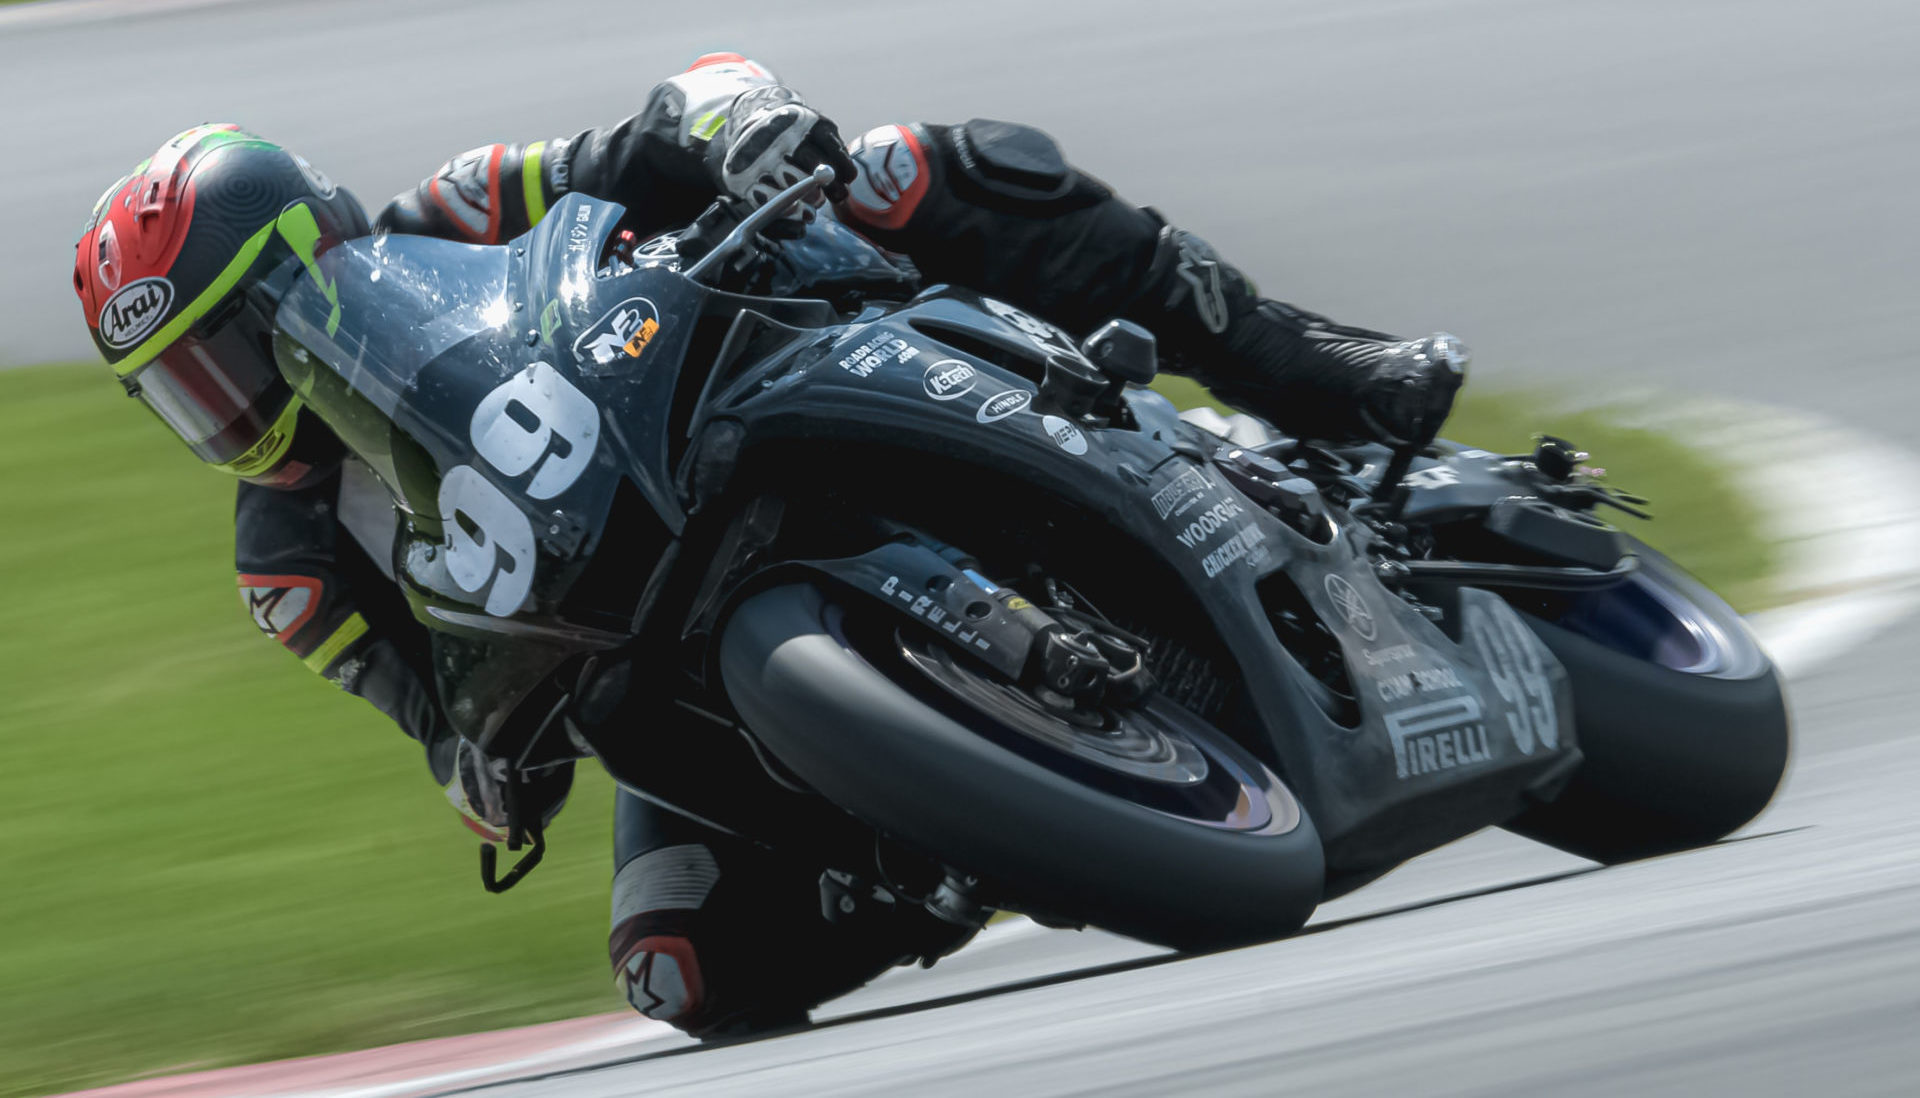 Chris Peris (99) at speed on Army of Darkness' Pirelli-shod Yamaha YZF-R1. Photo courtesy Army of Darkness.